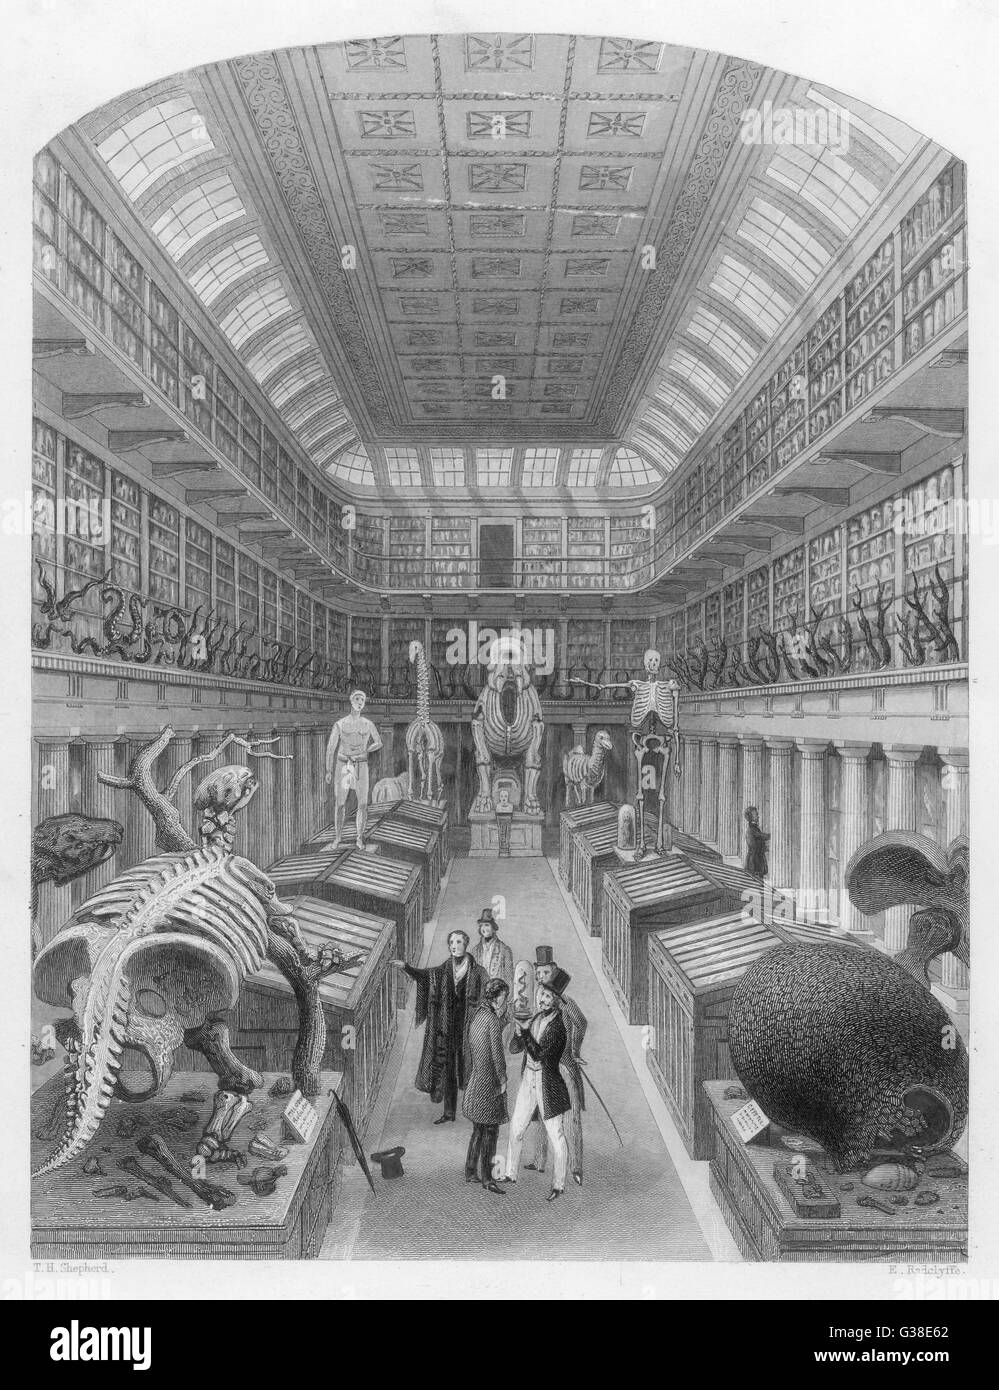 HUNTERIAN MUSEUM (Royal College of Surgeons)  Visitors observing various skeletons and natural history  specimens - Stock Image